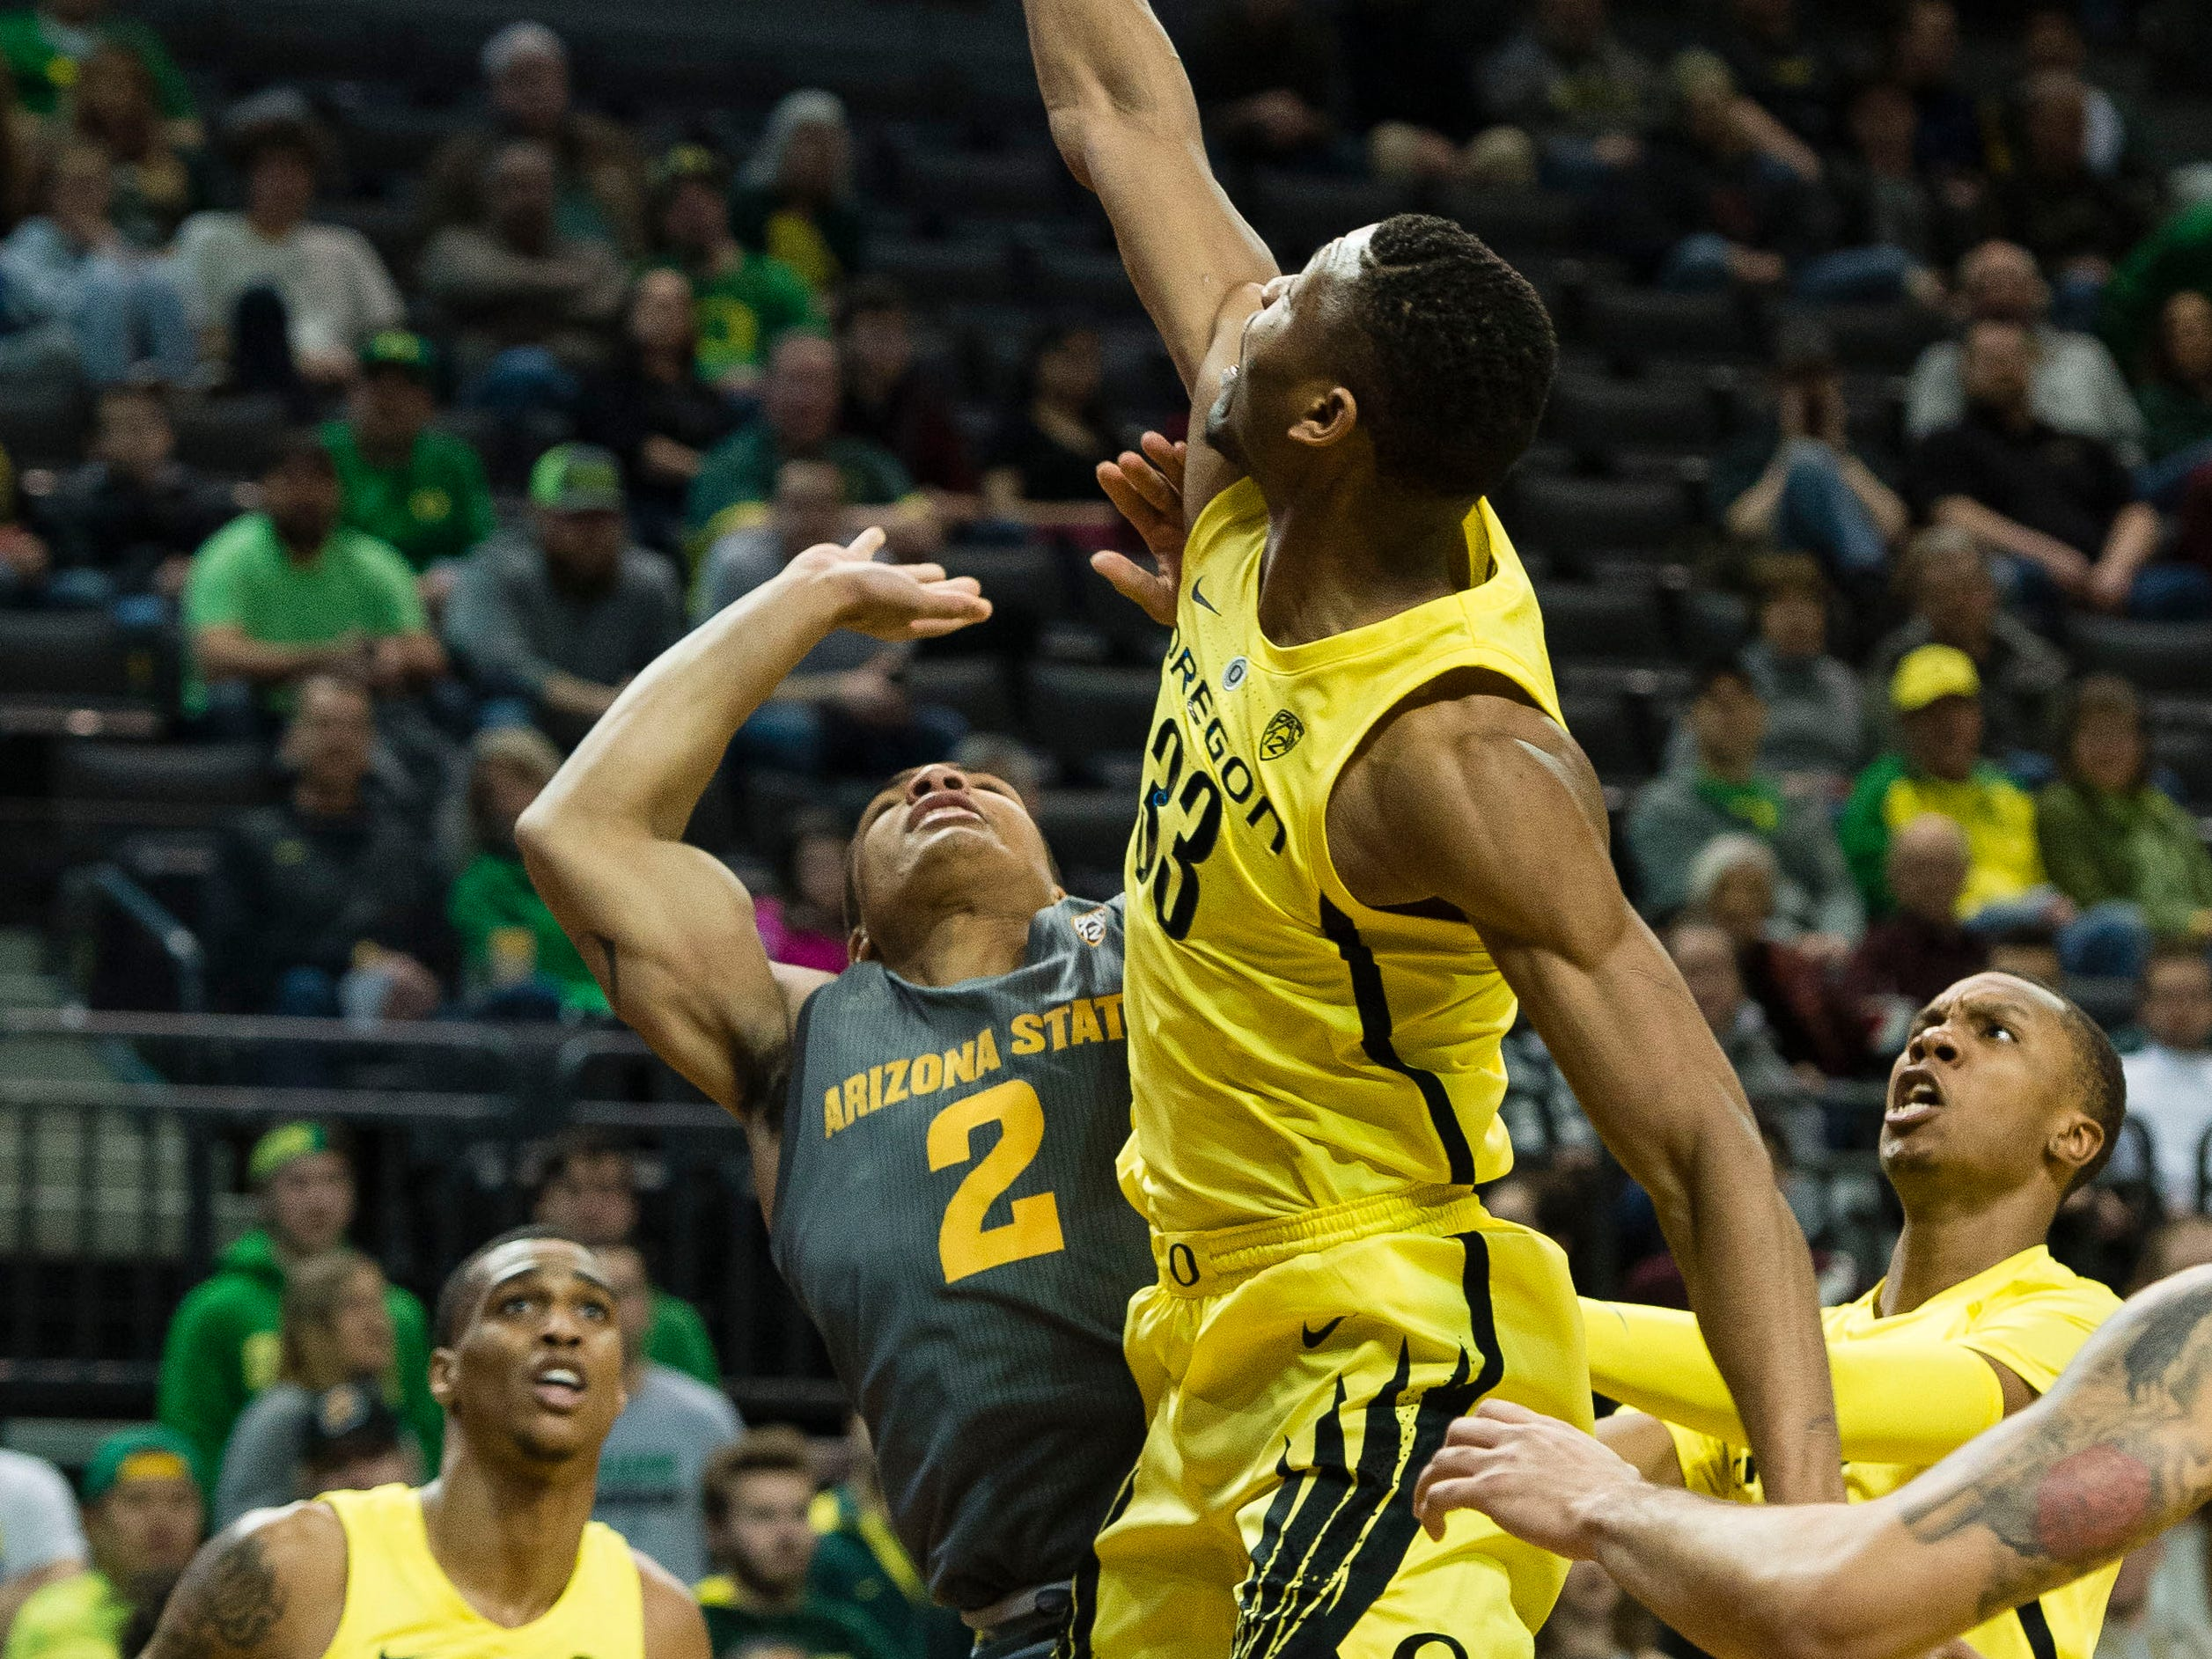 Feb 28, 2019; Eugene, OR, USA; Oregon Ducks forward Francis Okoro (33) blocks a shot by Arizona State Sun Devils guard Rob Edwards (2) during the first half at Matthew Knight Arena.